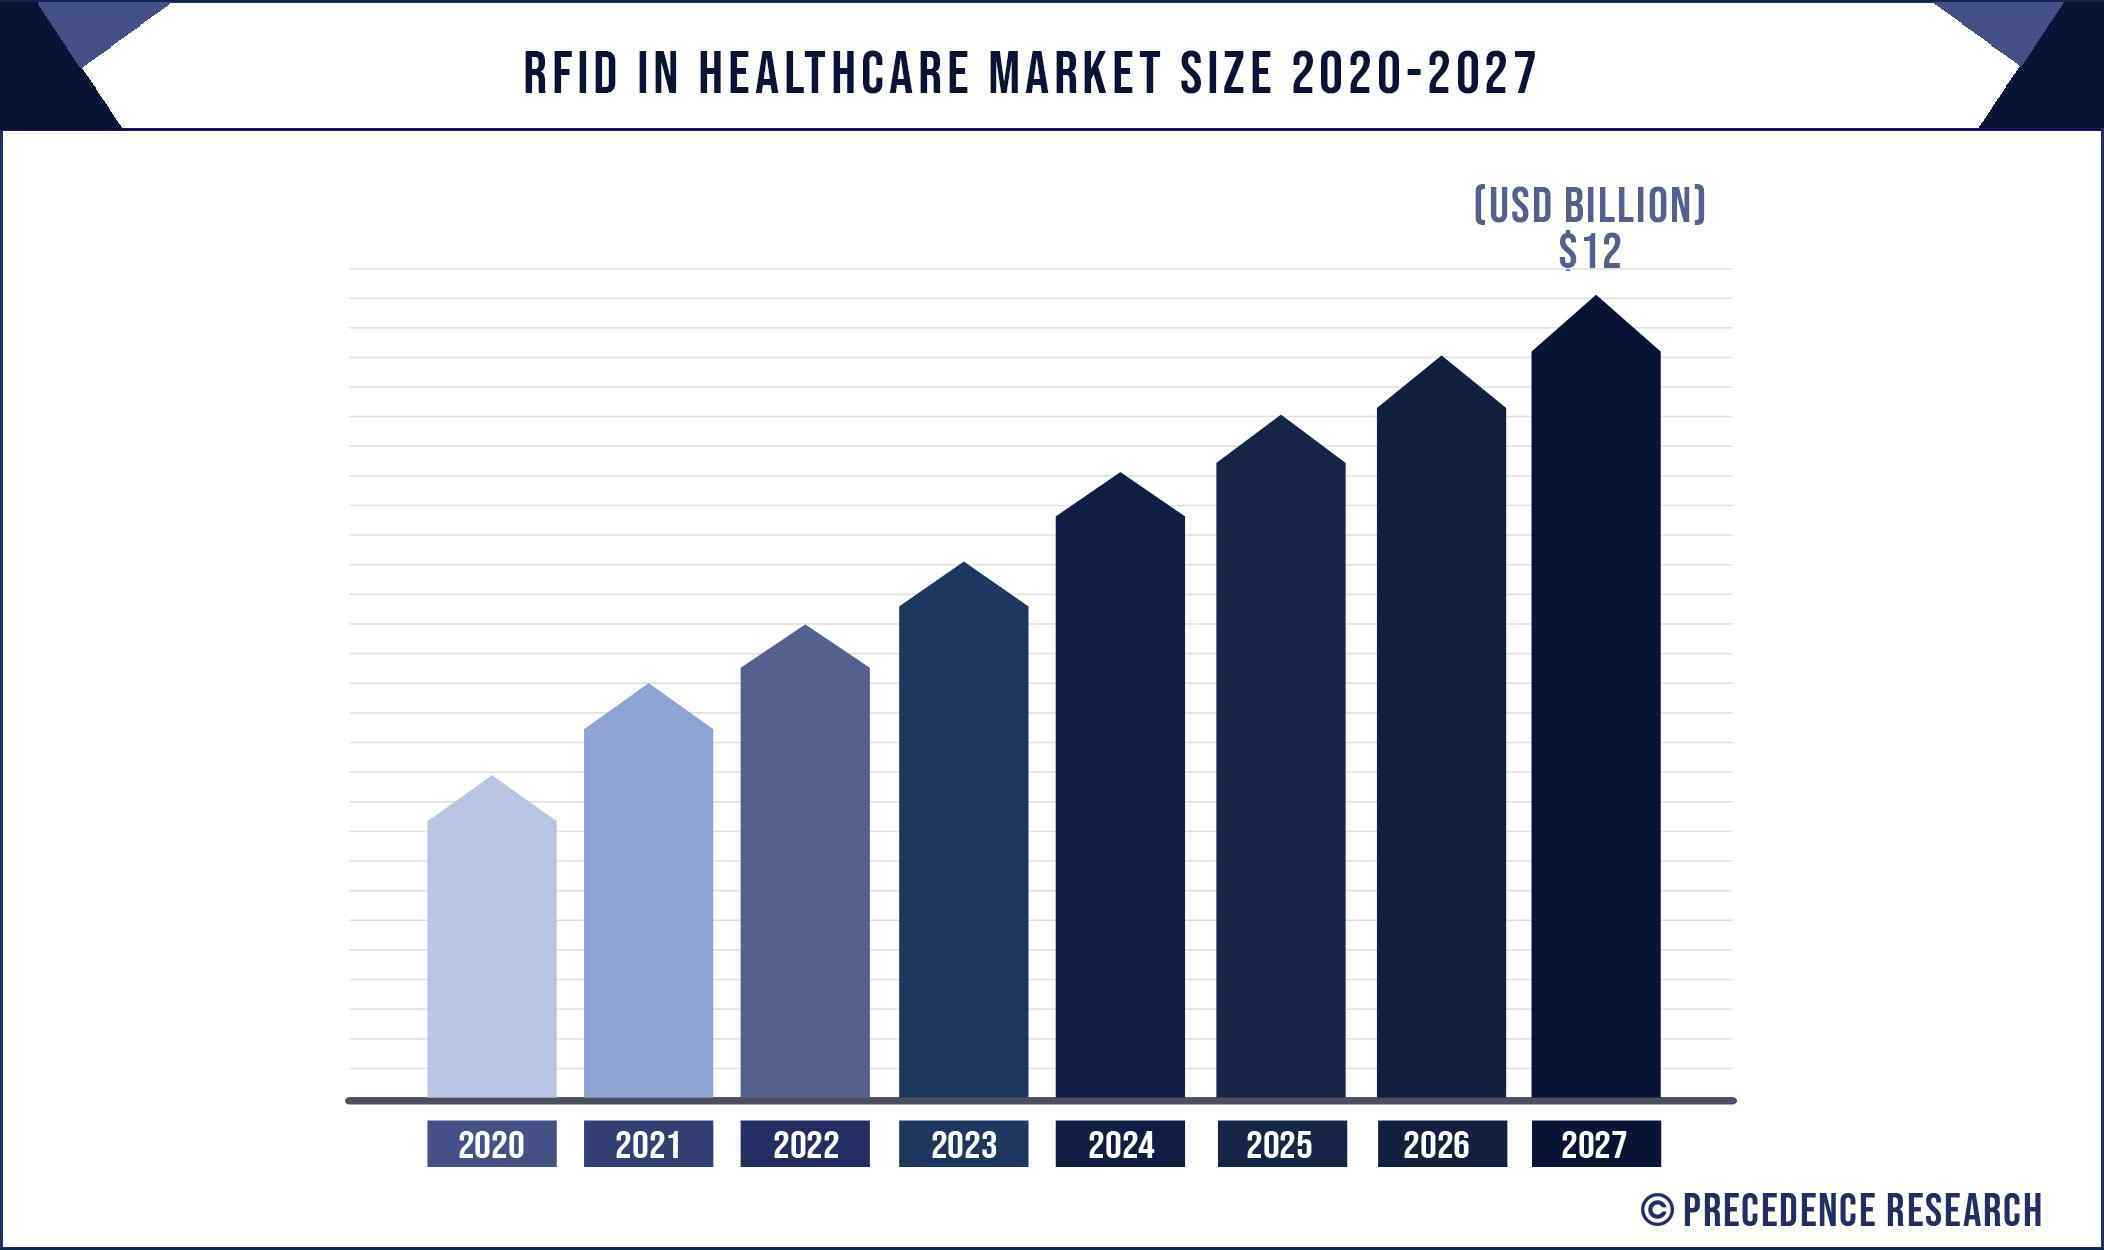 RFID in Healthcare Market Size 2020 to 2027